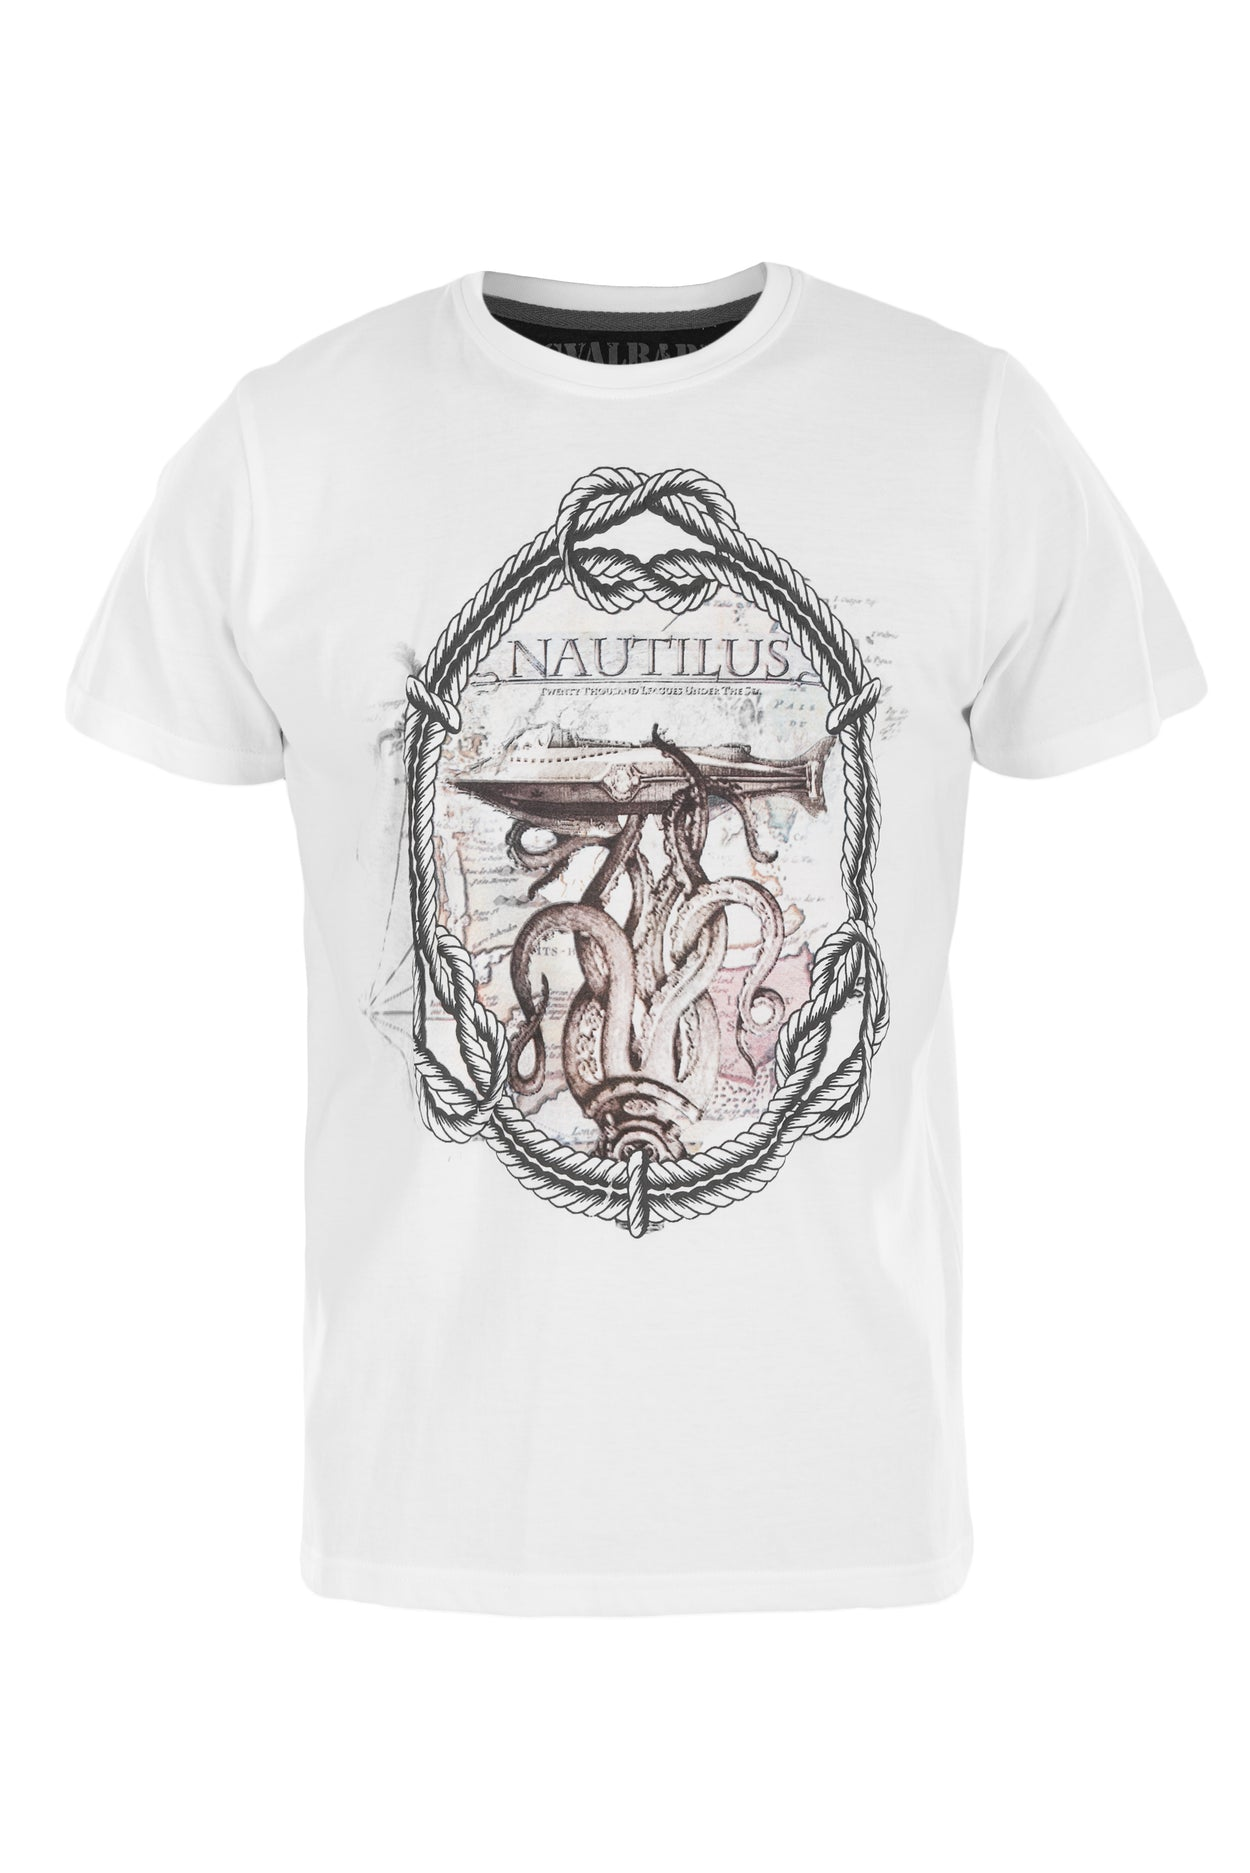 T-shirt Nautilus - White